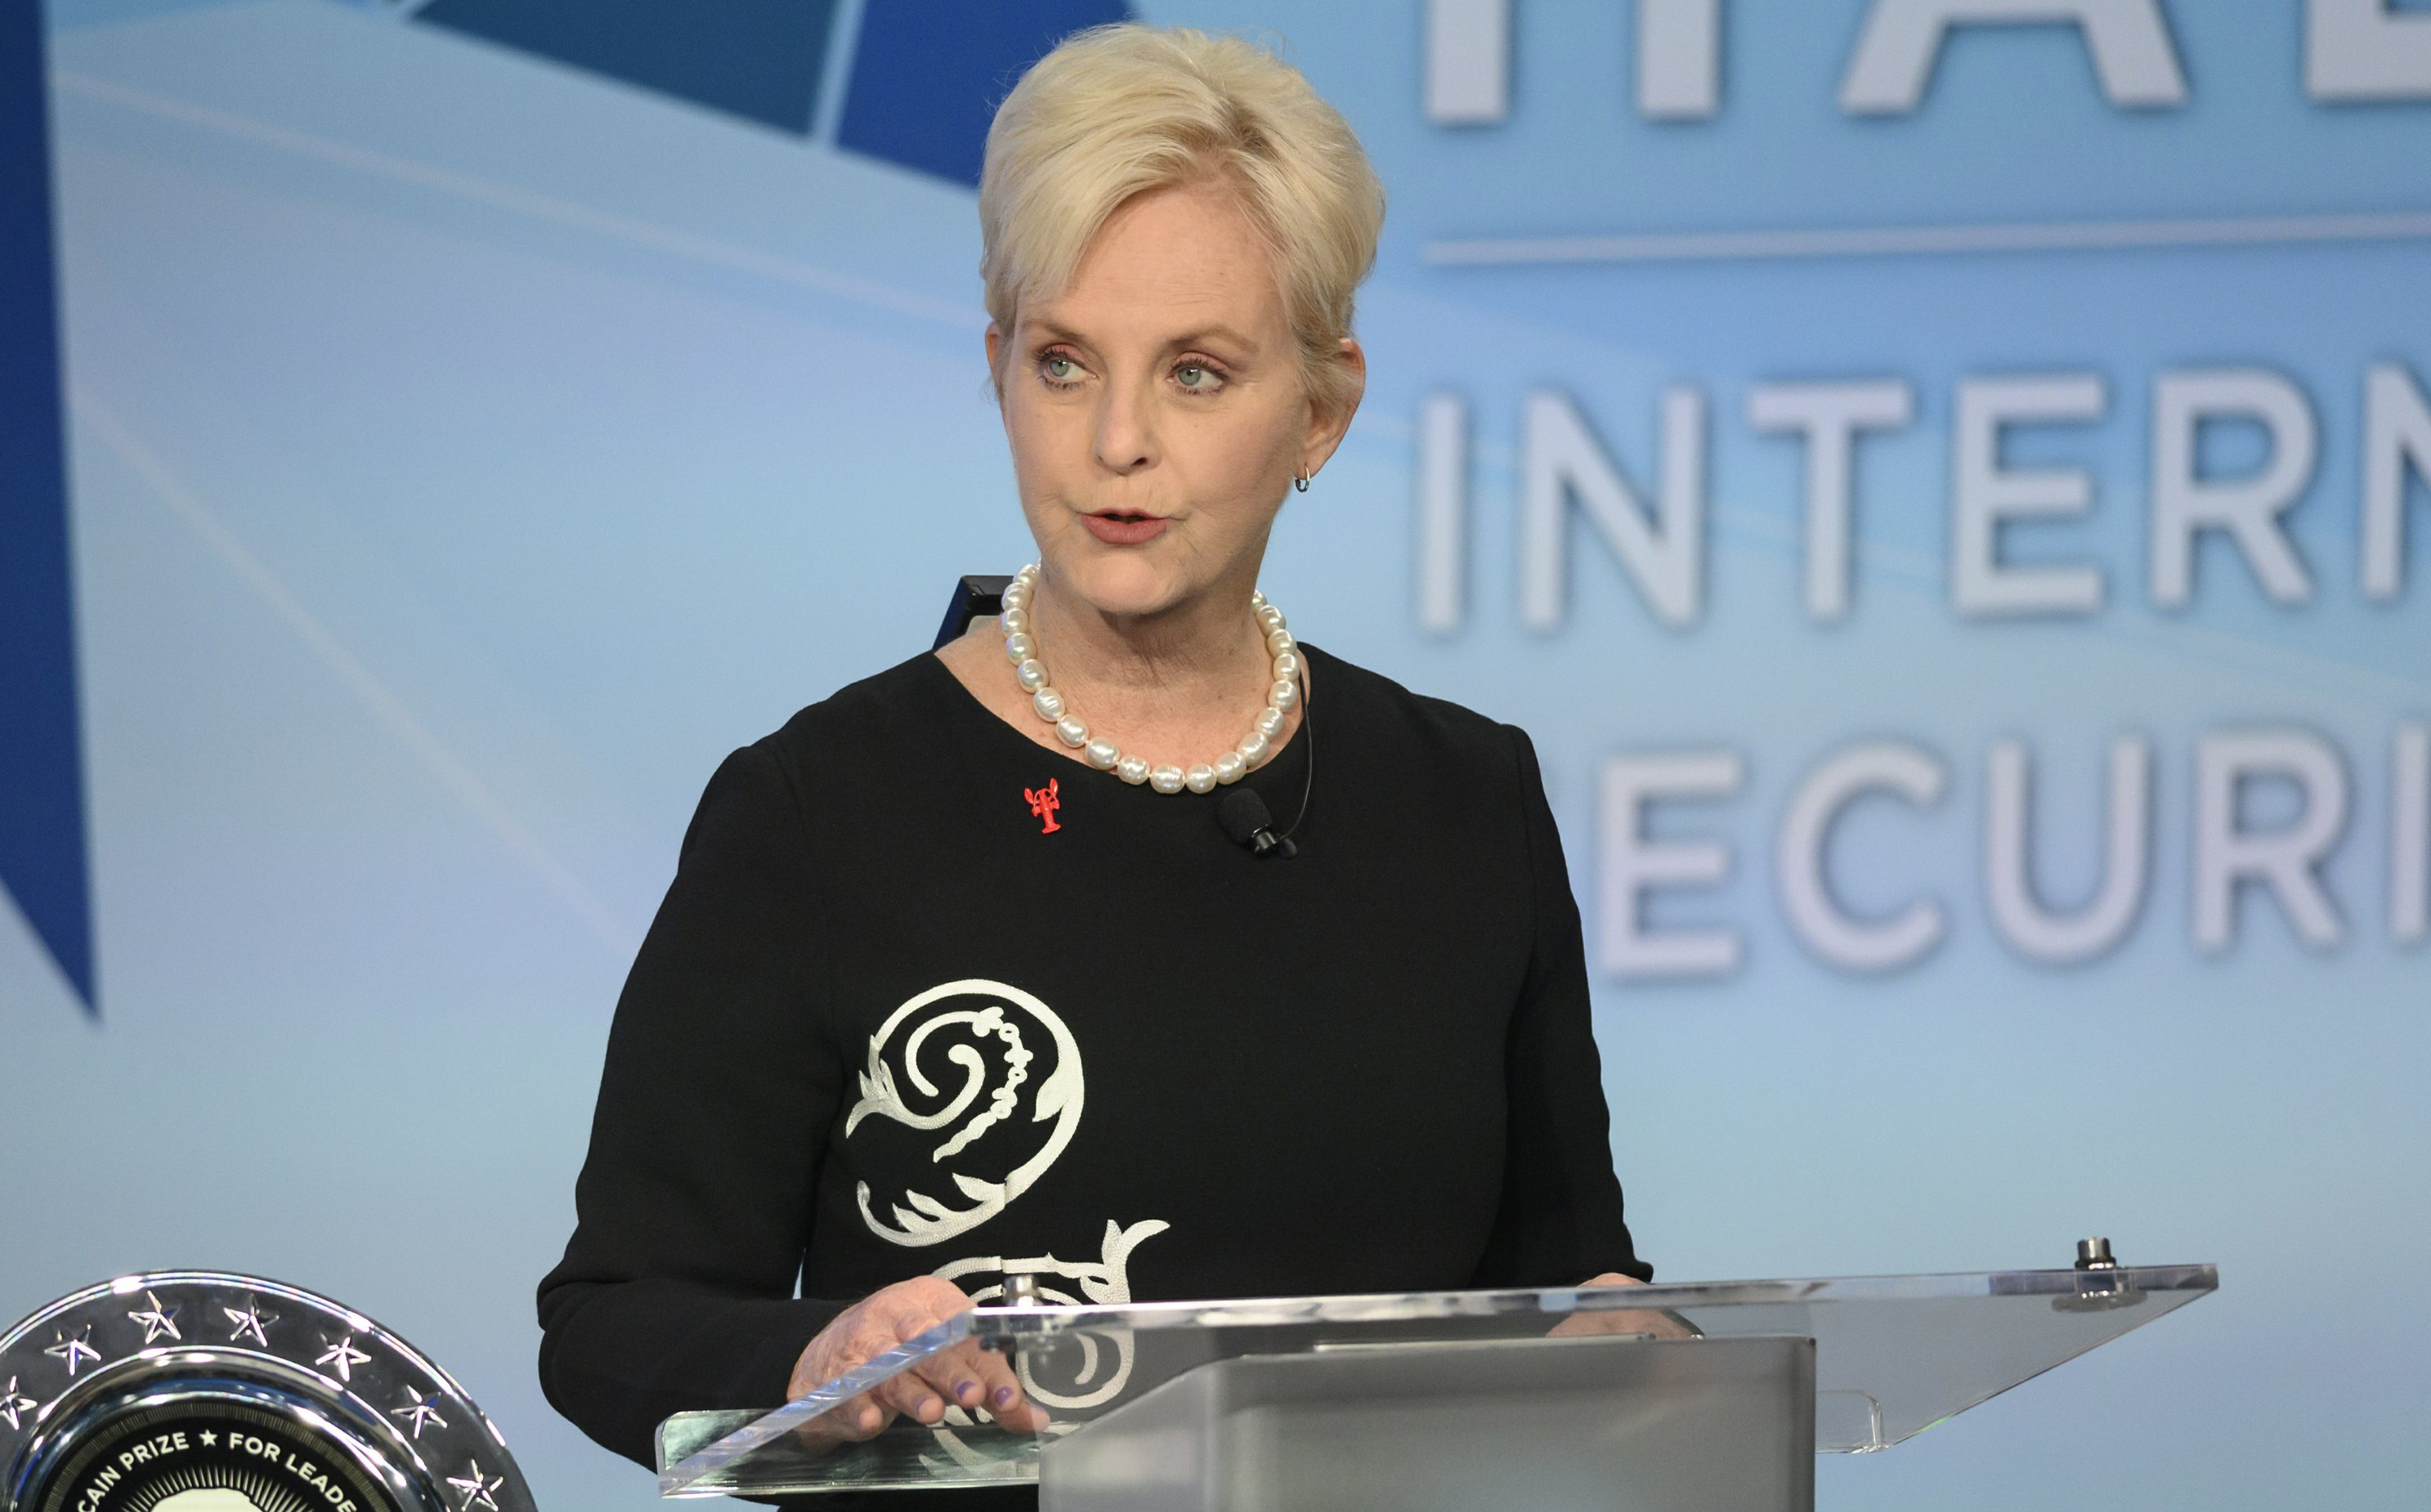 Cindy McCain apology shows challenge for mixed-race families